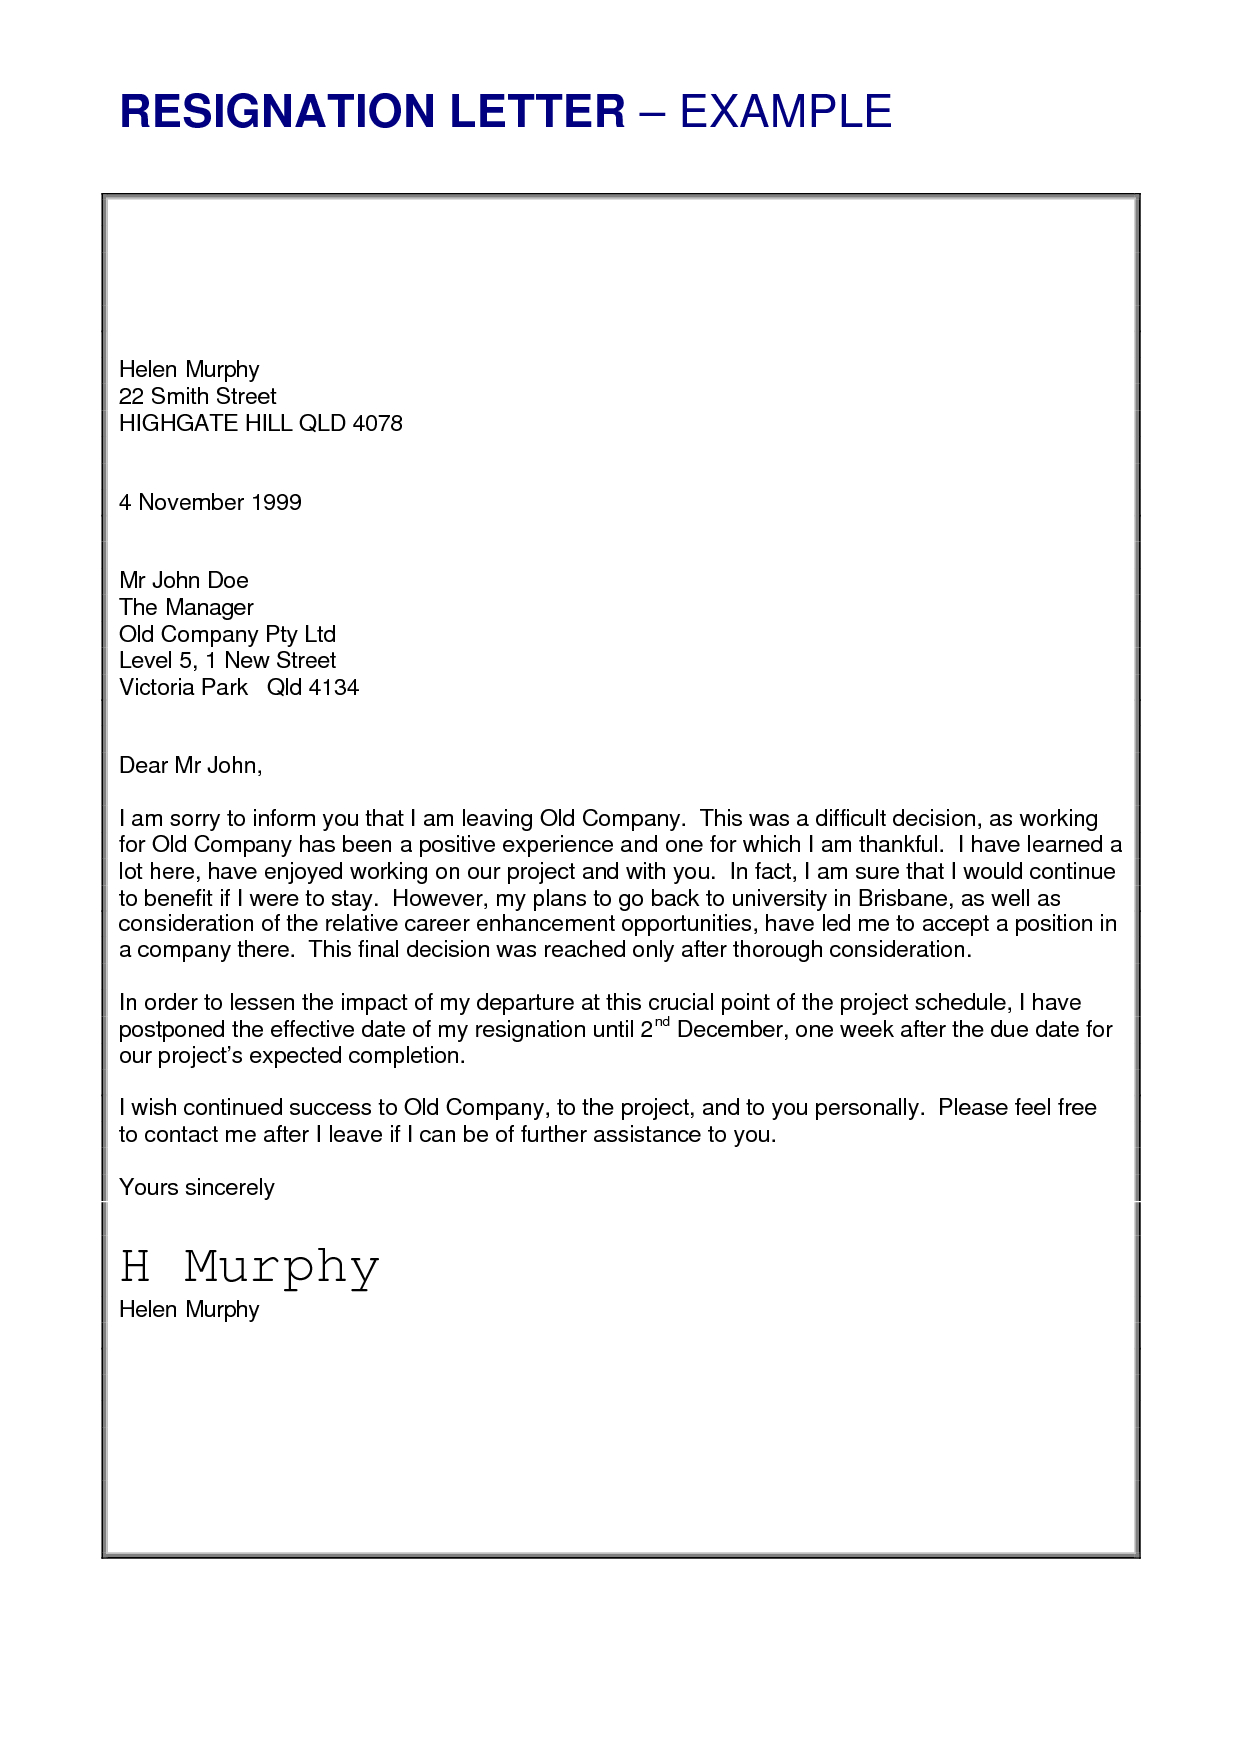 Work Resignation Letter Template - Job Resignation Letter Sample Loganun Blog